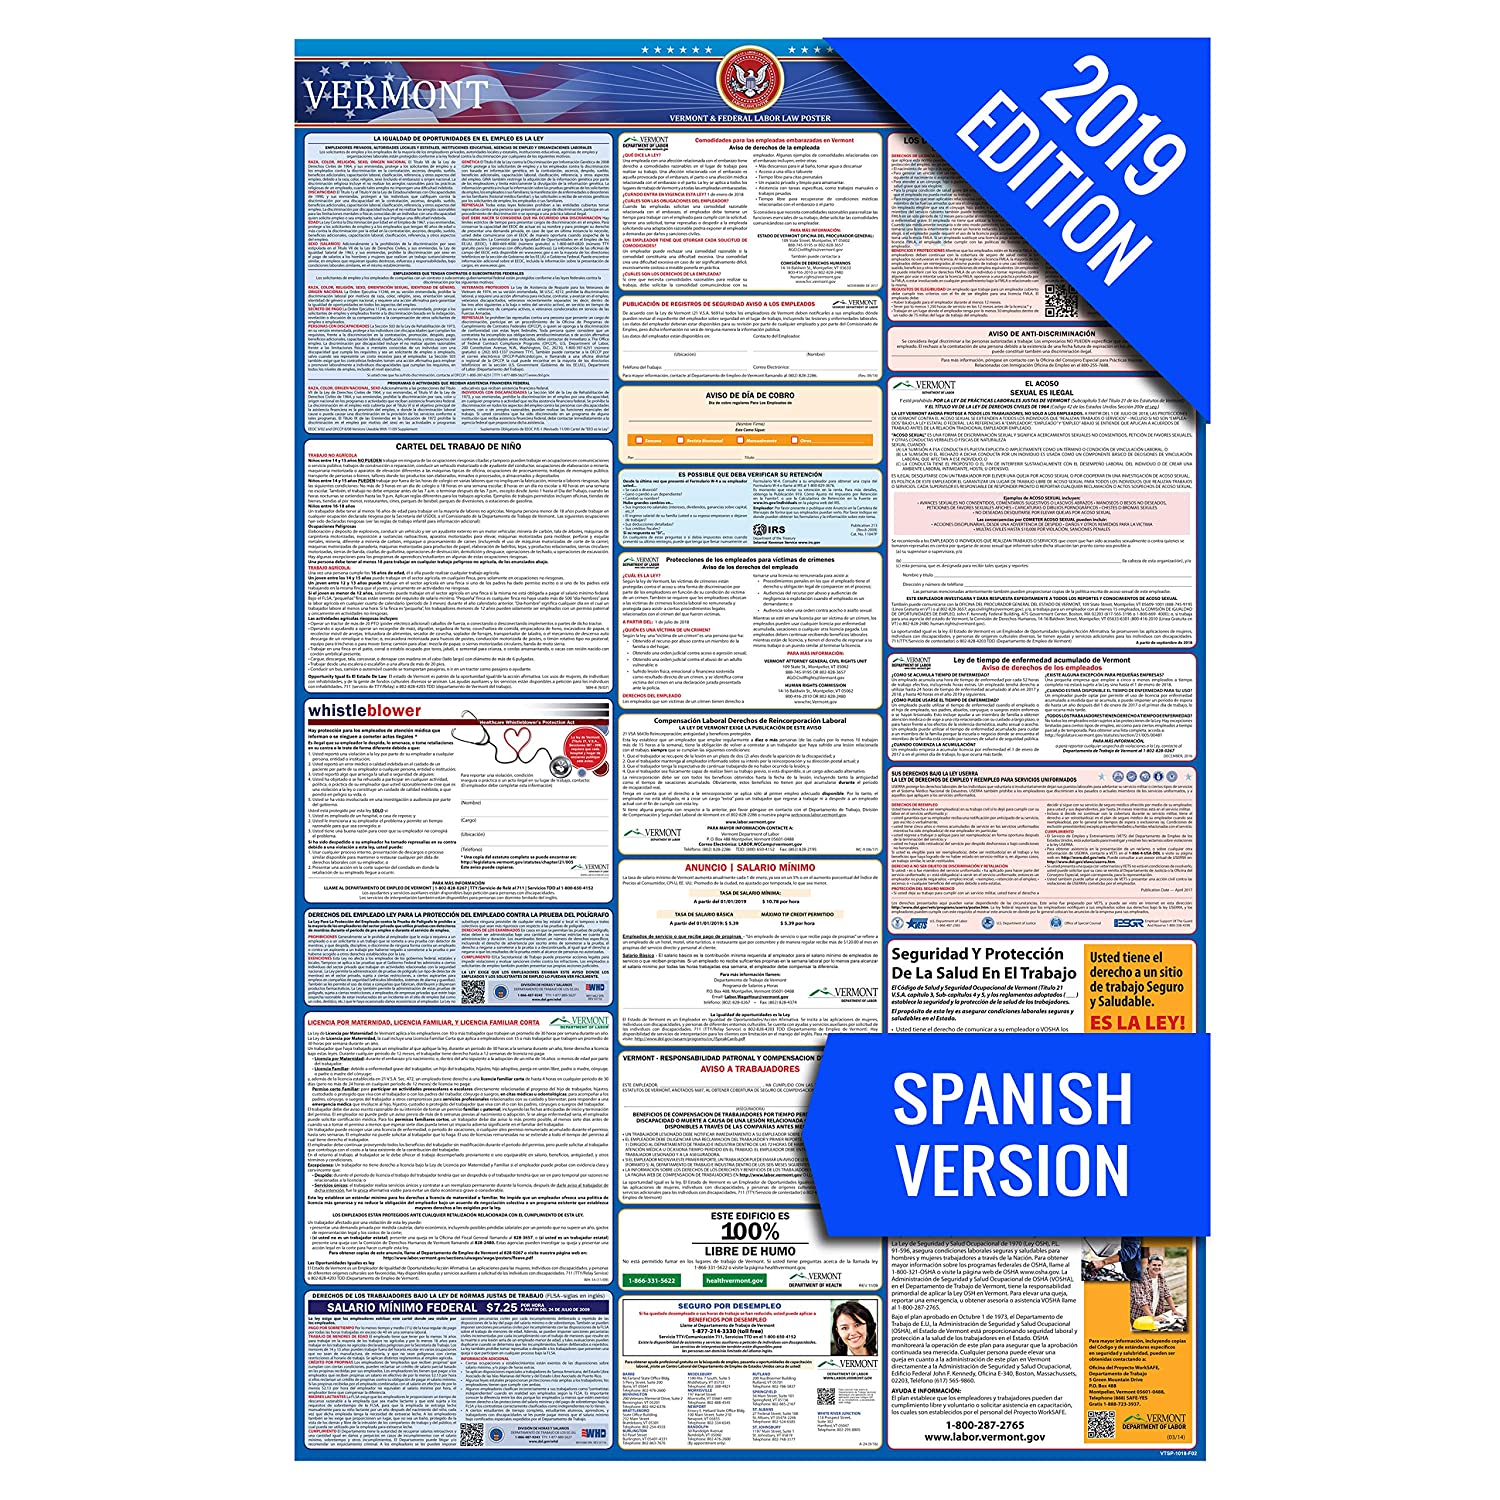 Amazon.com : 2019 Vermont (Spanish) Labor Law Poster - State ...